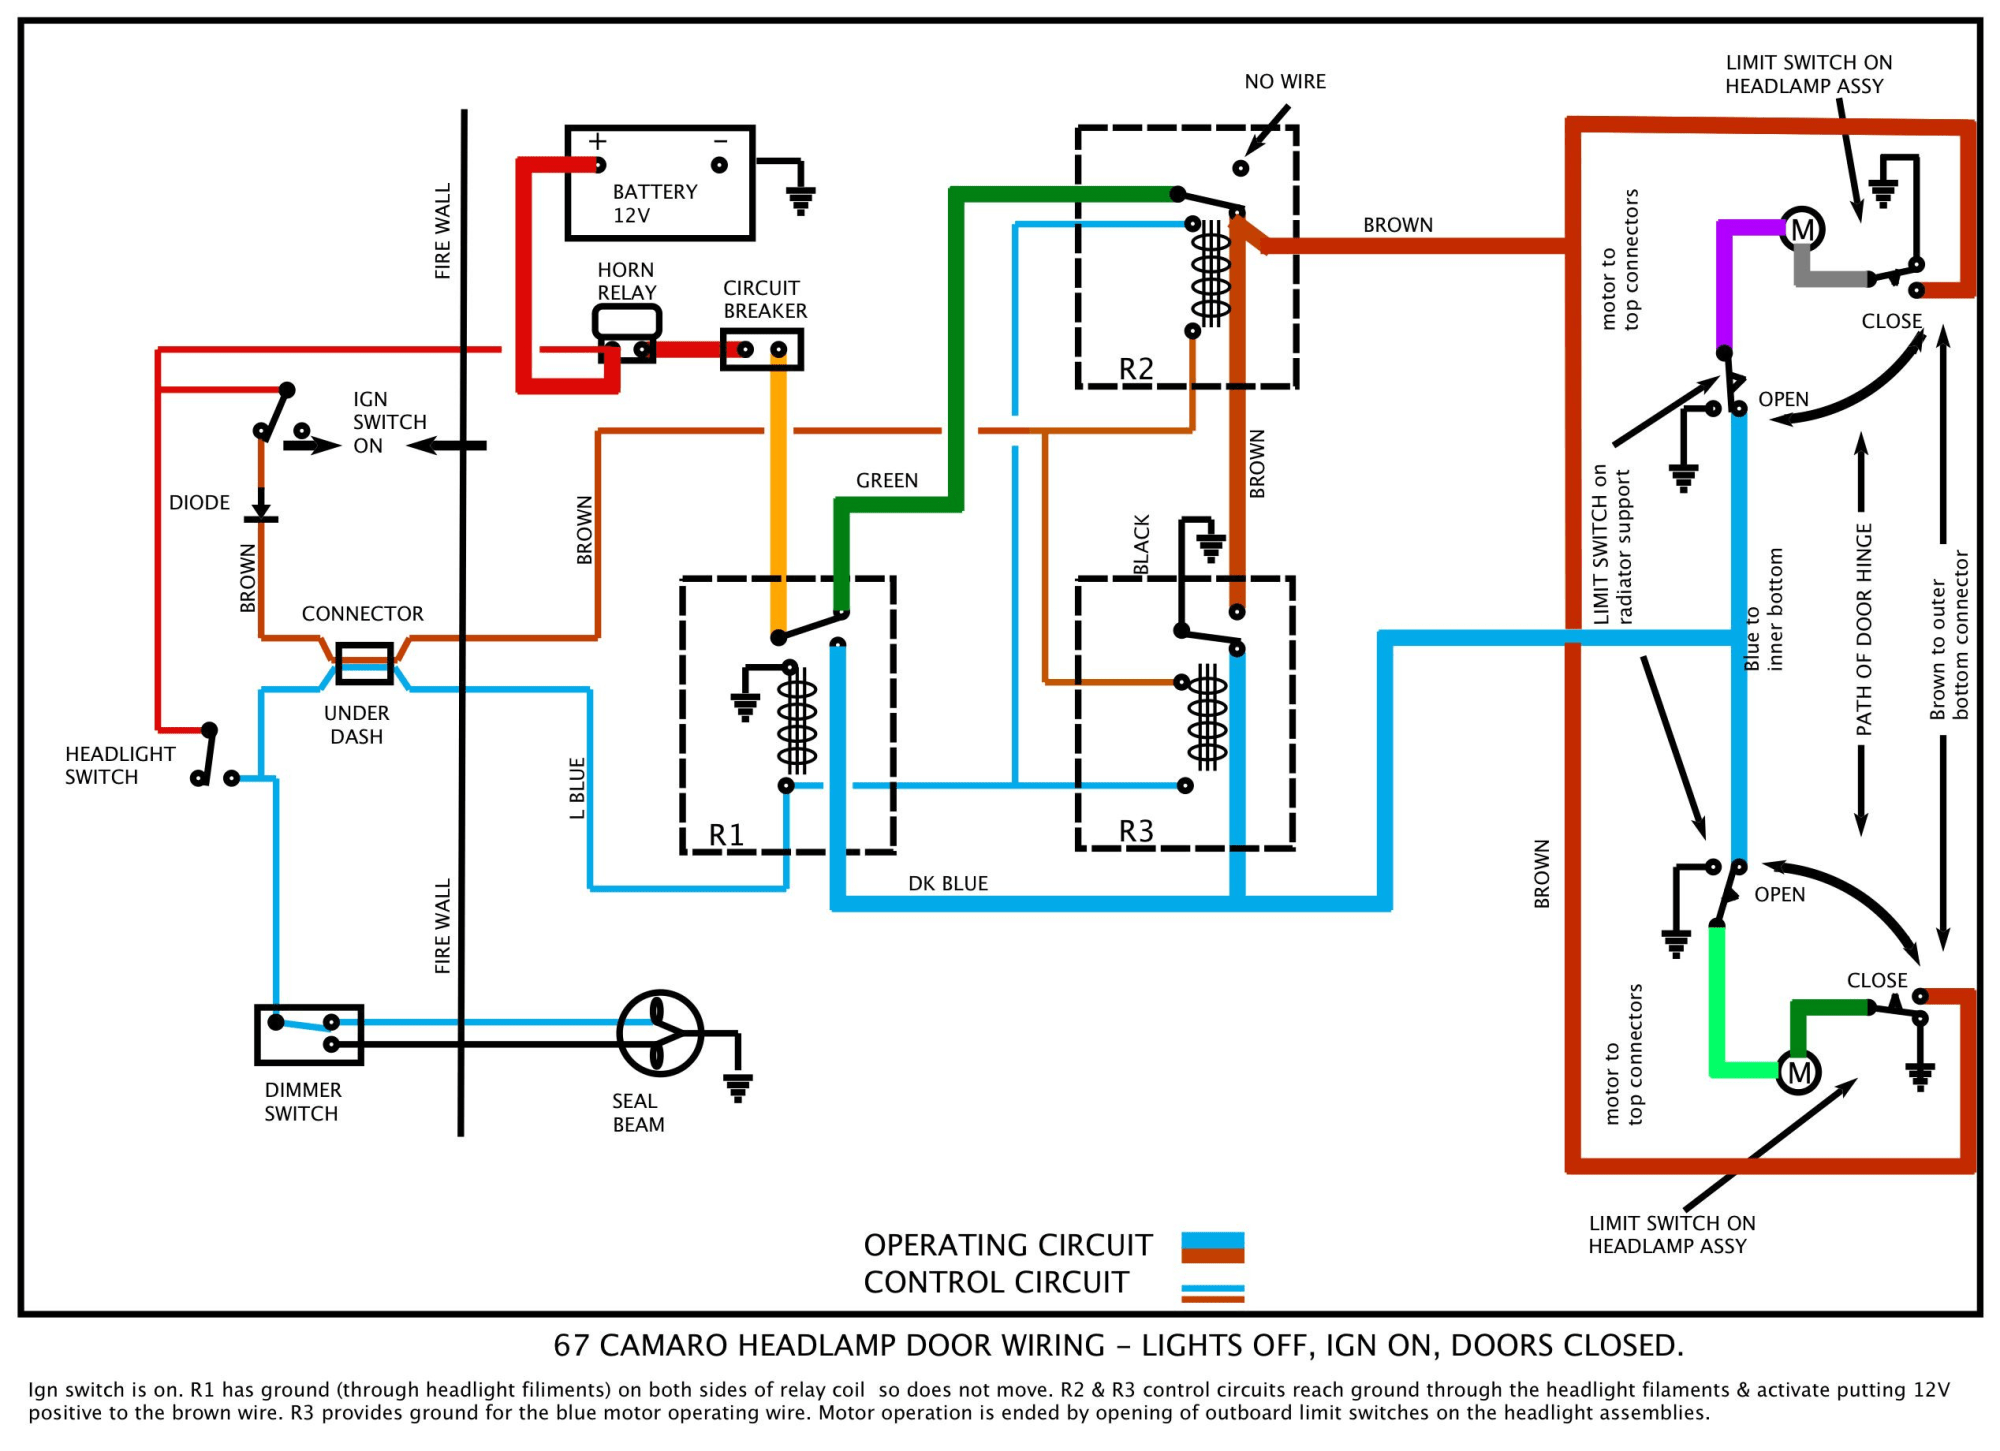 hight resolution of 1969 camaro fuse box wiring diagram wiring diagram centre wiring diagram moreover 1967 camaro fuse panel diagram wiring